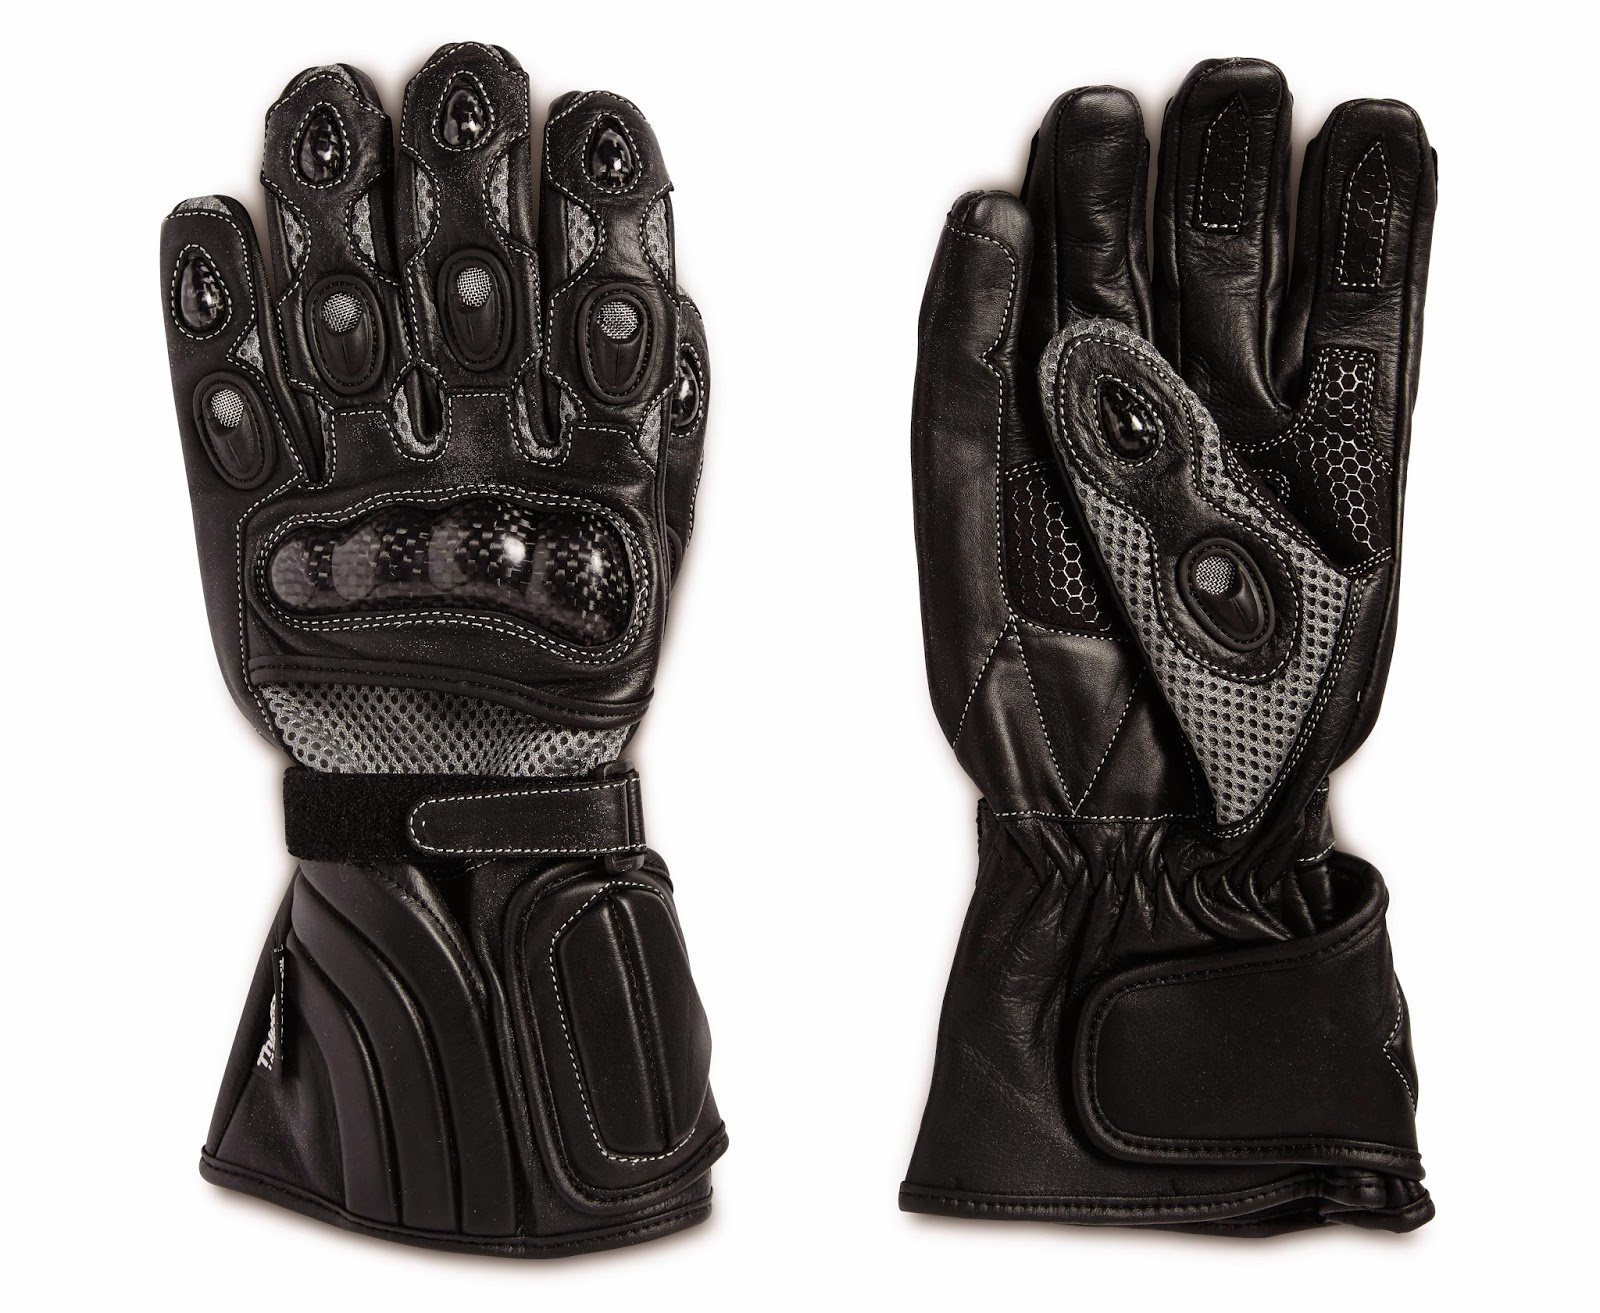 Aldi Motorcycle Gloves